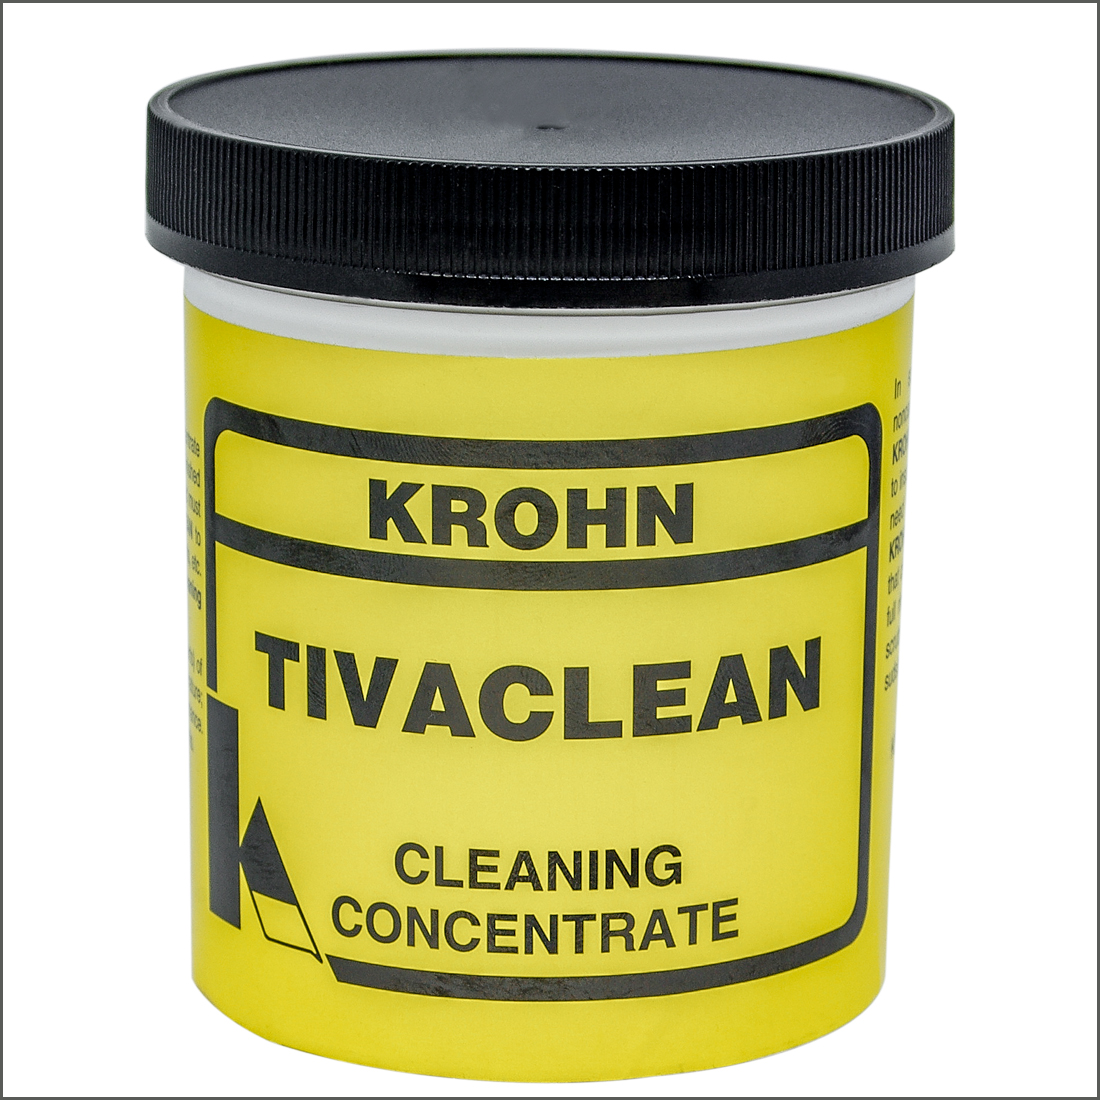 Krohn tivaclean CLEANING CONCENTRATE